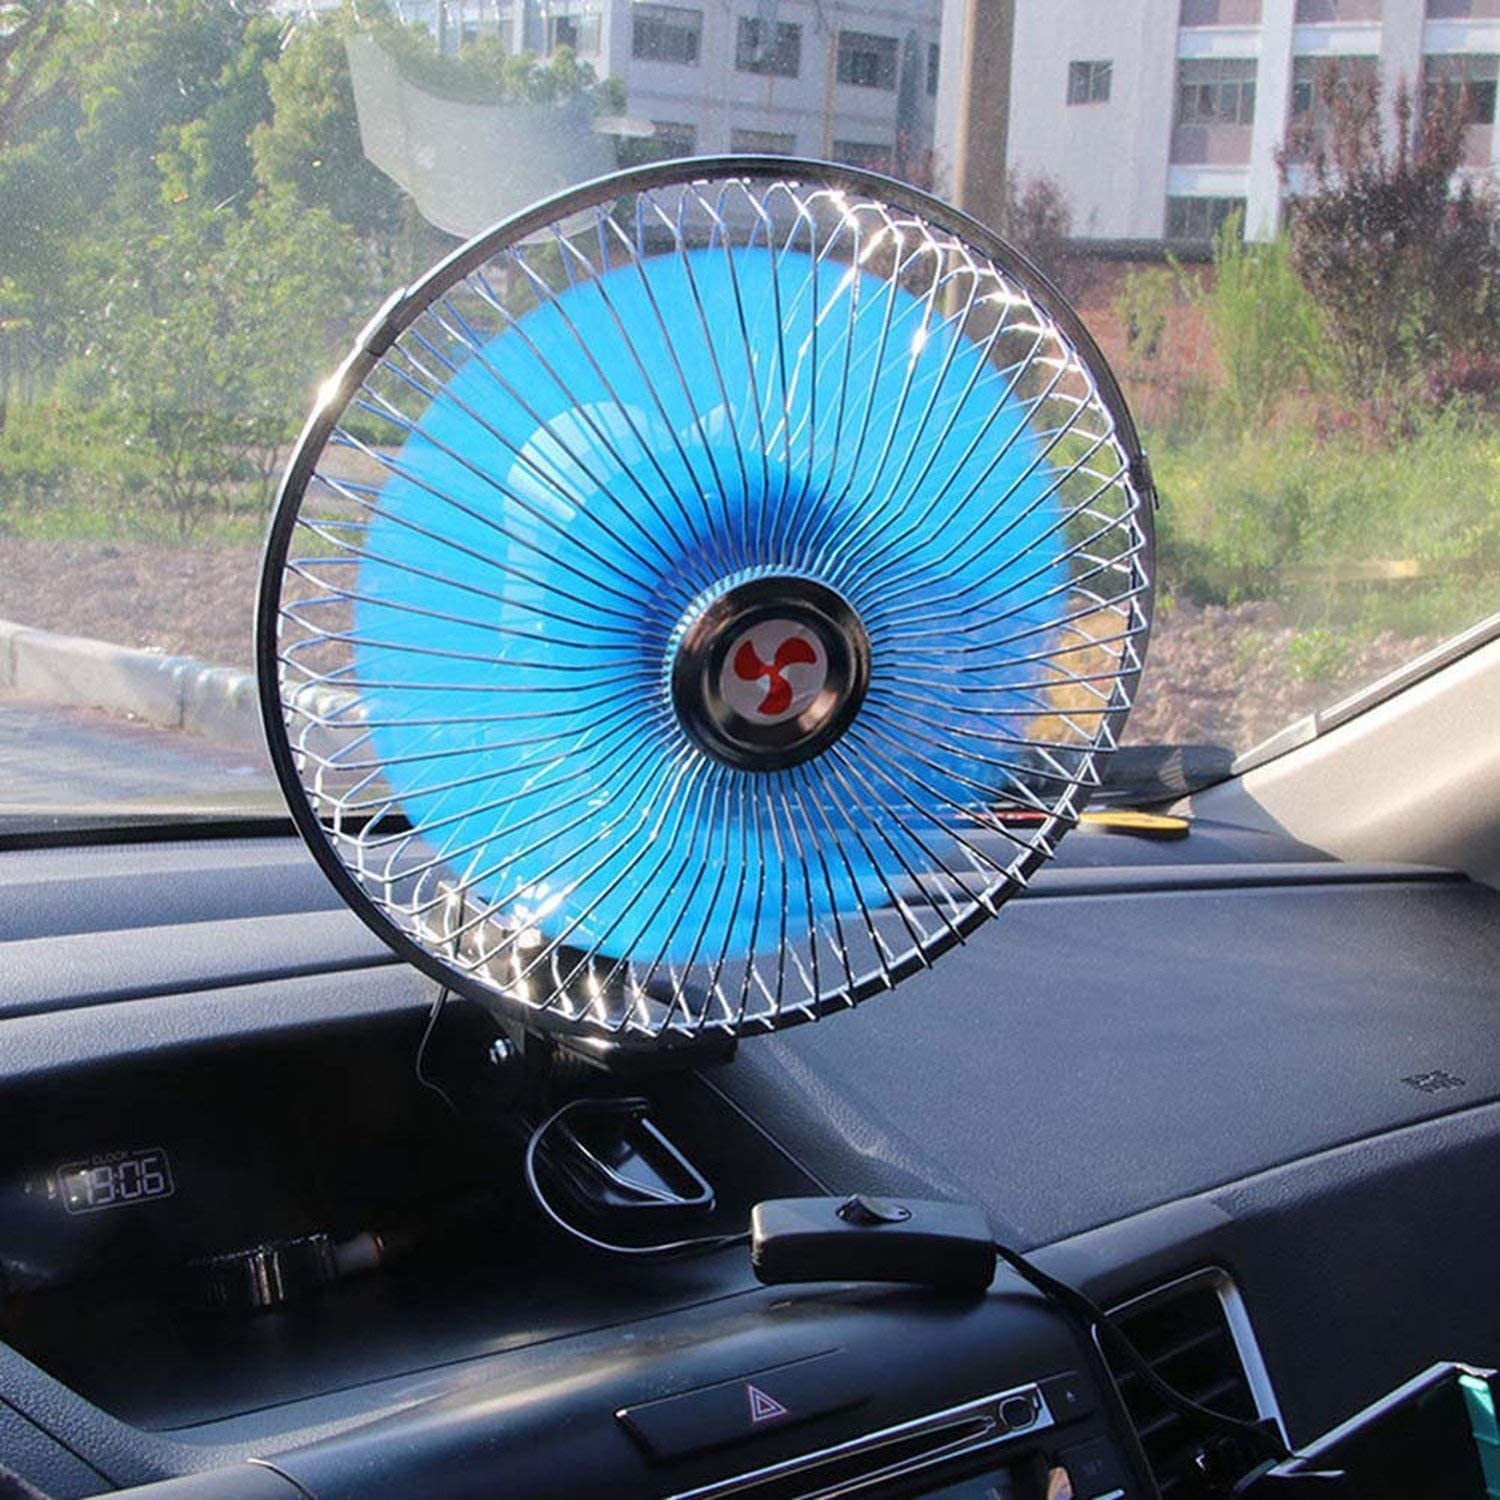 12V Powered Portable Auto Vehicle Car Fan Oscillating Cooling with Clip Blue